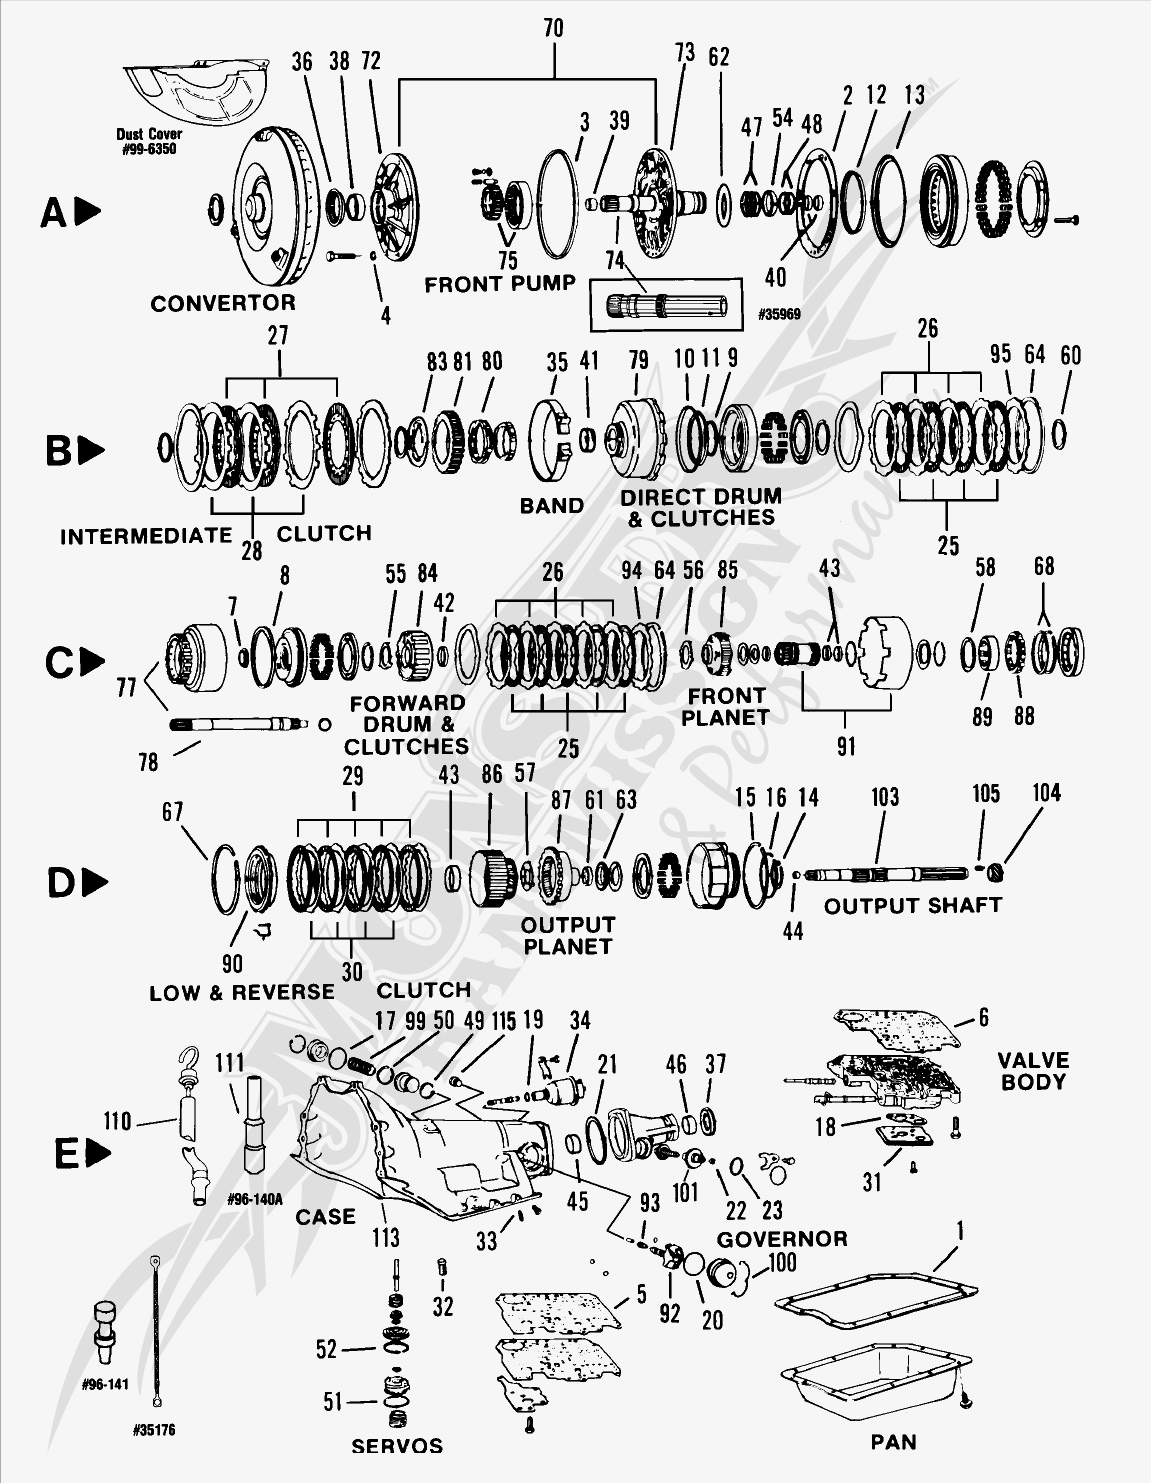 Gm 350 Transmission Schematic Wiring Diagram Electricity Basics Turbo 350c Th350c Automatic Parts And Rh Monstertransmission Com 4l60e